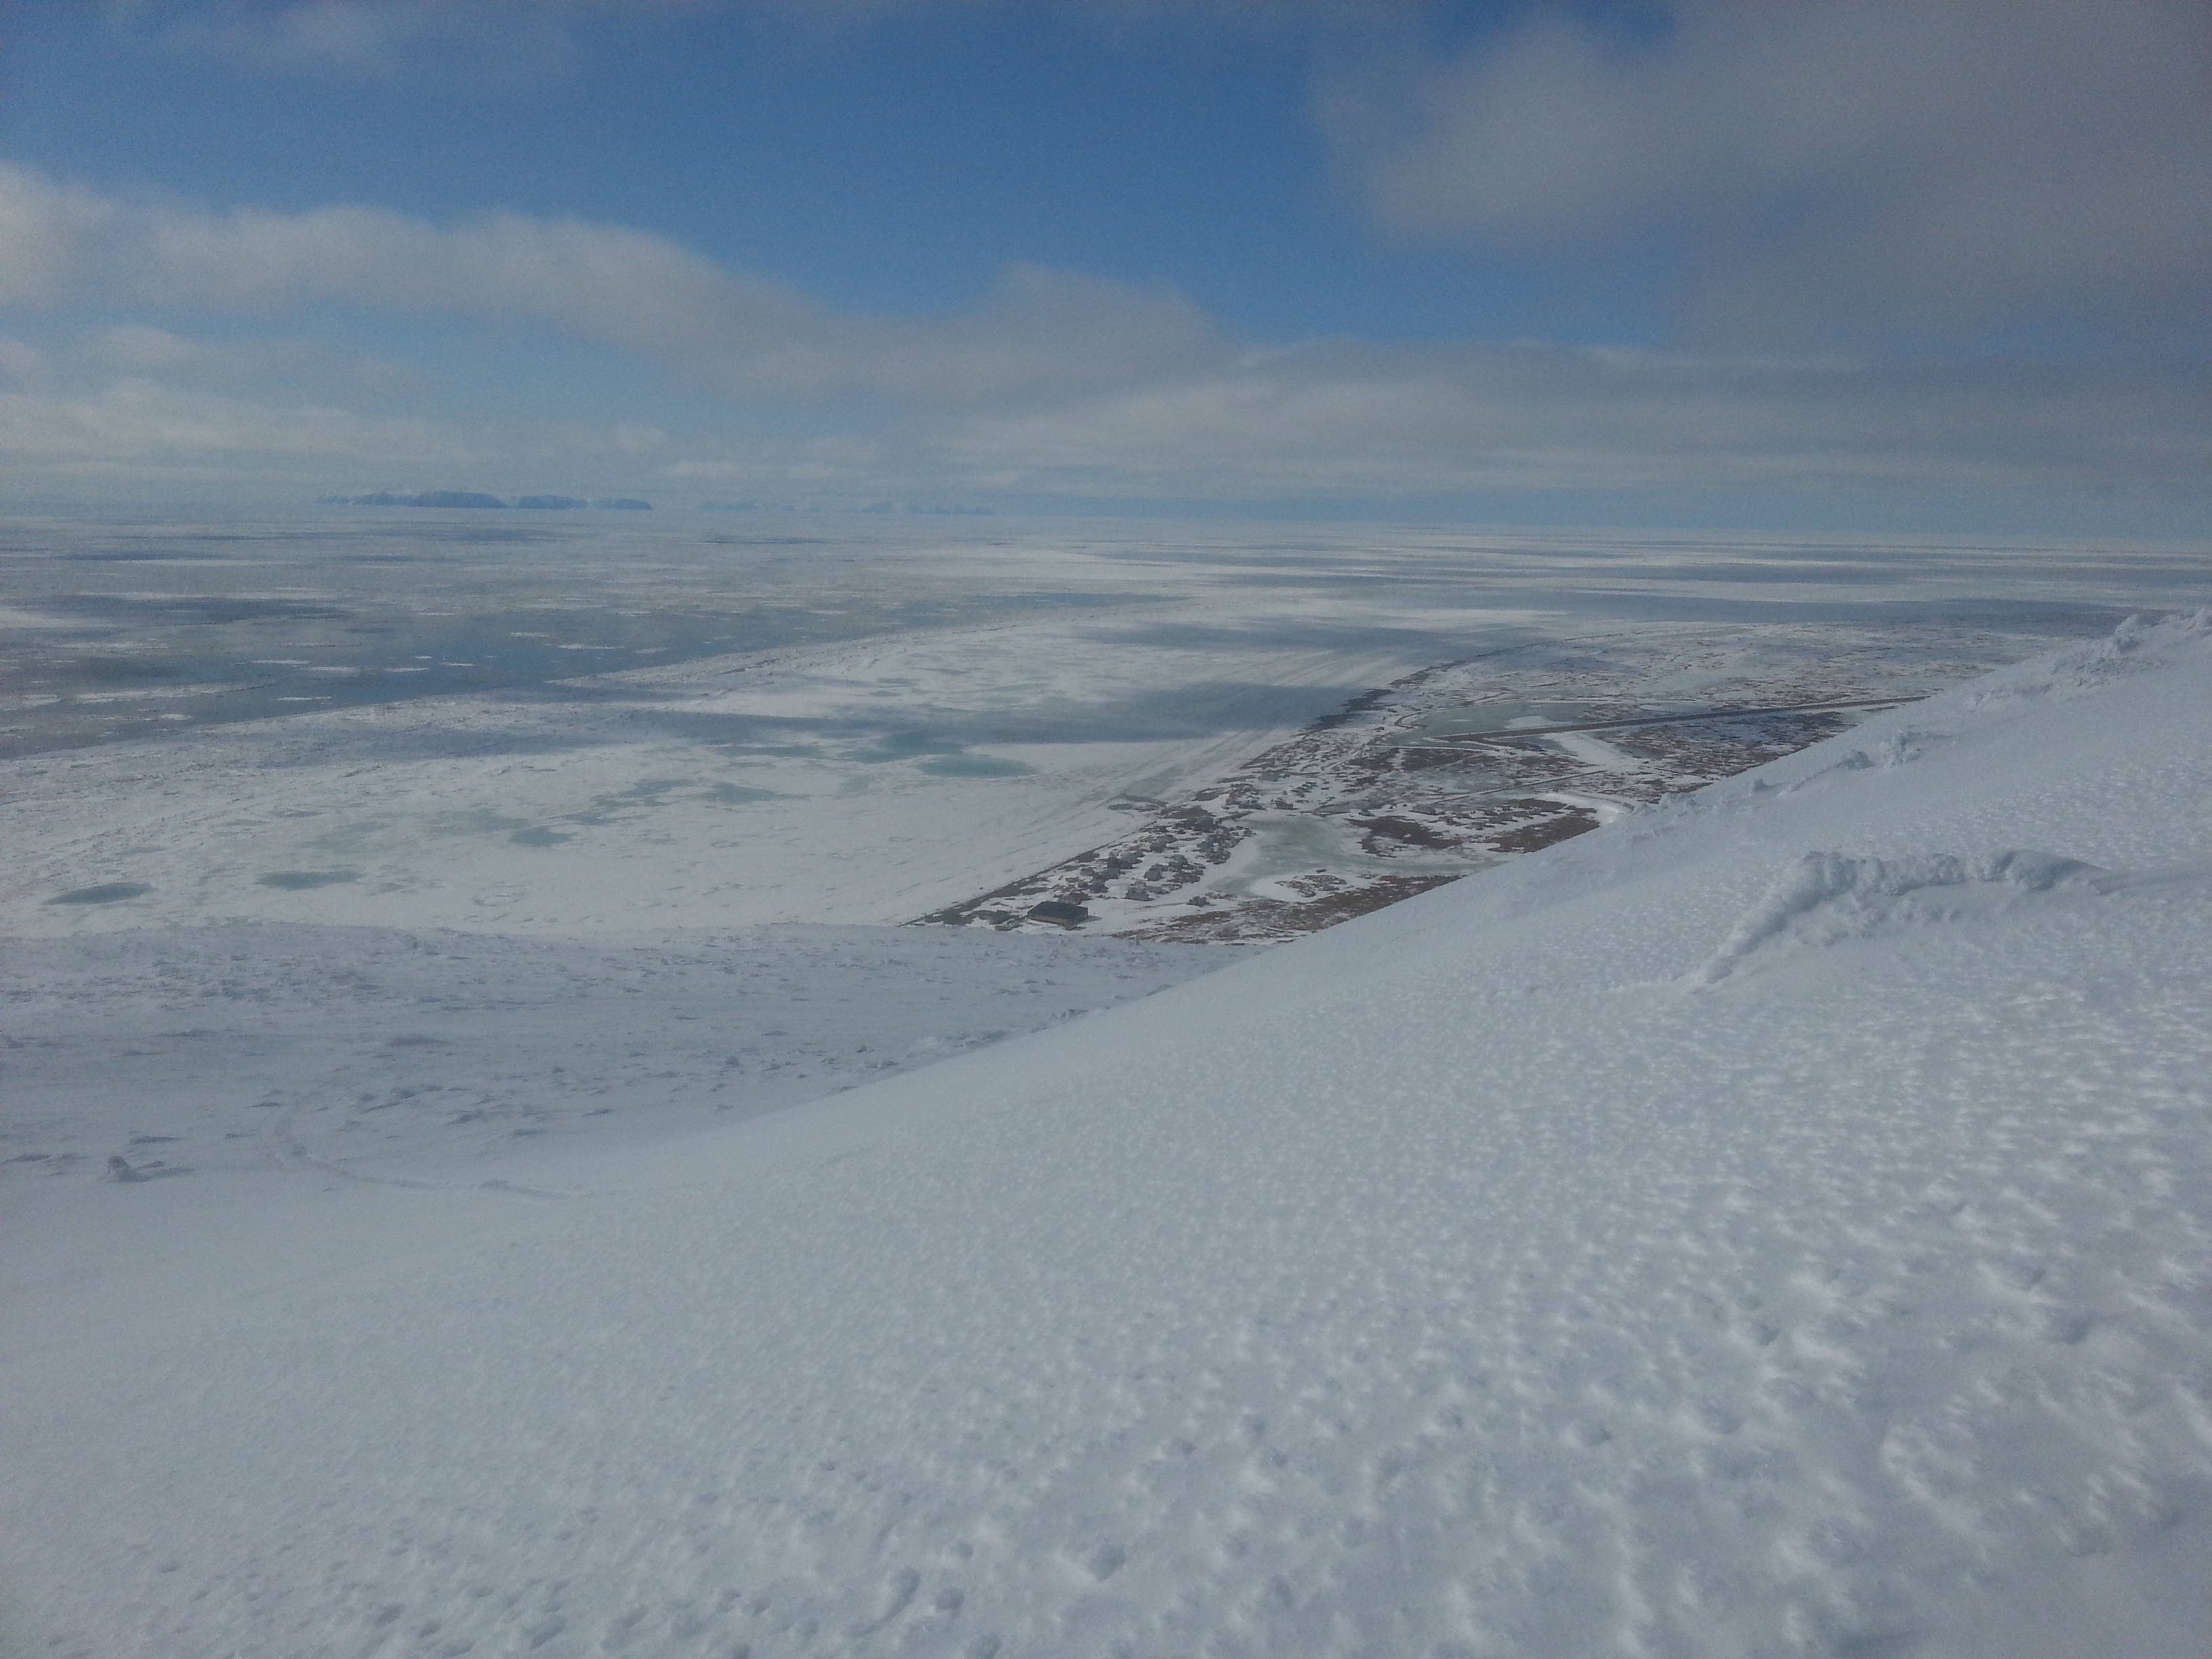 4 May 2014 - Looking WNW across the Bering Strait. Shorefast ice shows evidence of thaw from the preceding week, with large melt ponds showing up as light blue in color.